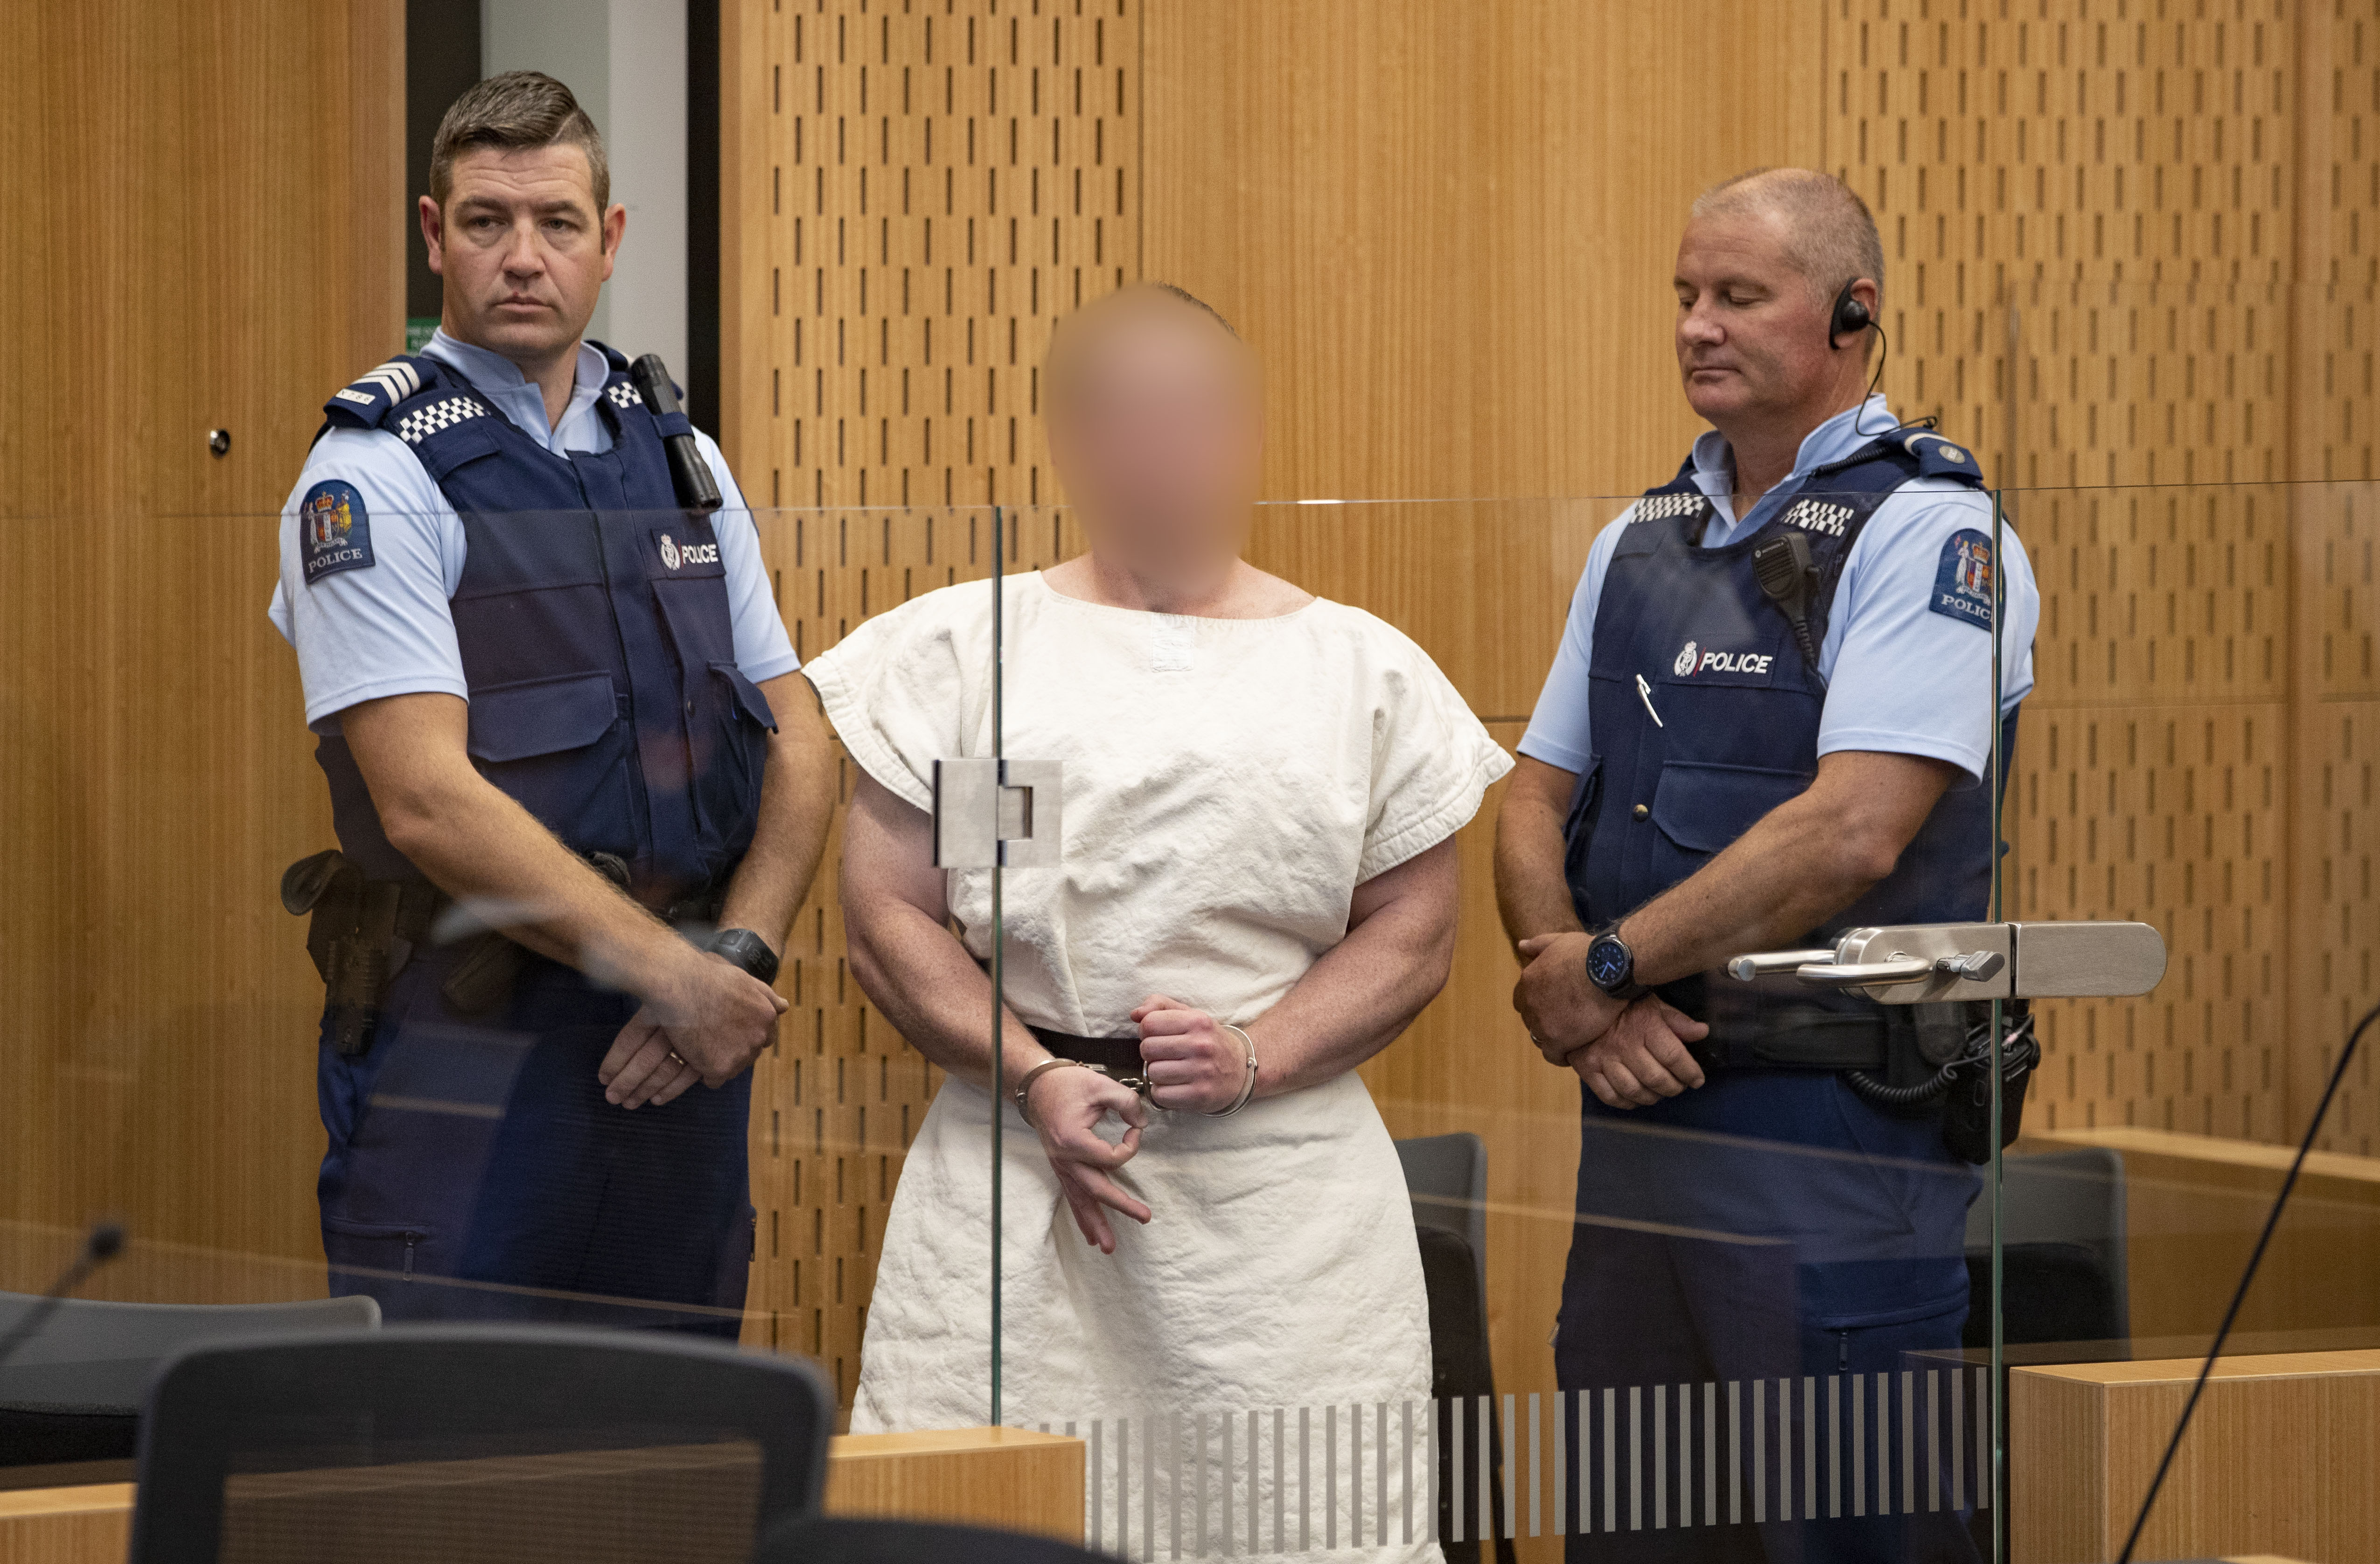 Christchurch attacker supposed to proceed rampage when arrested